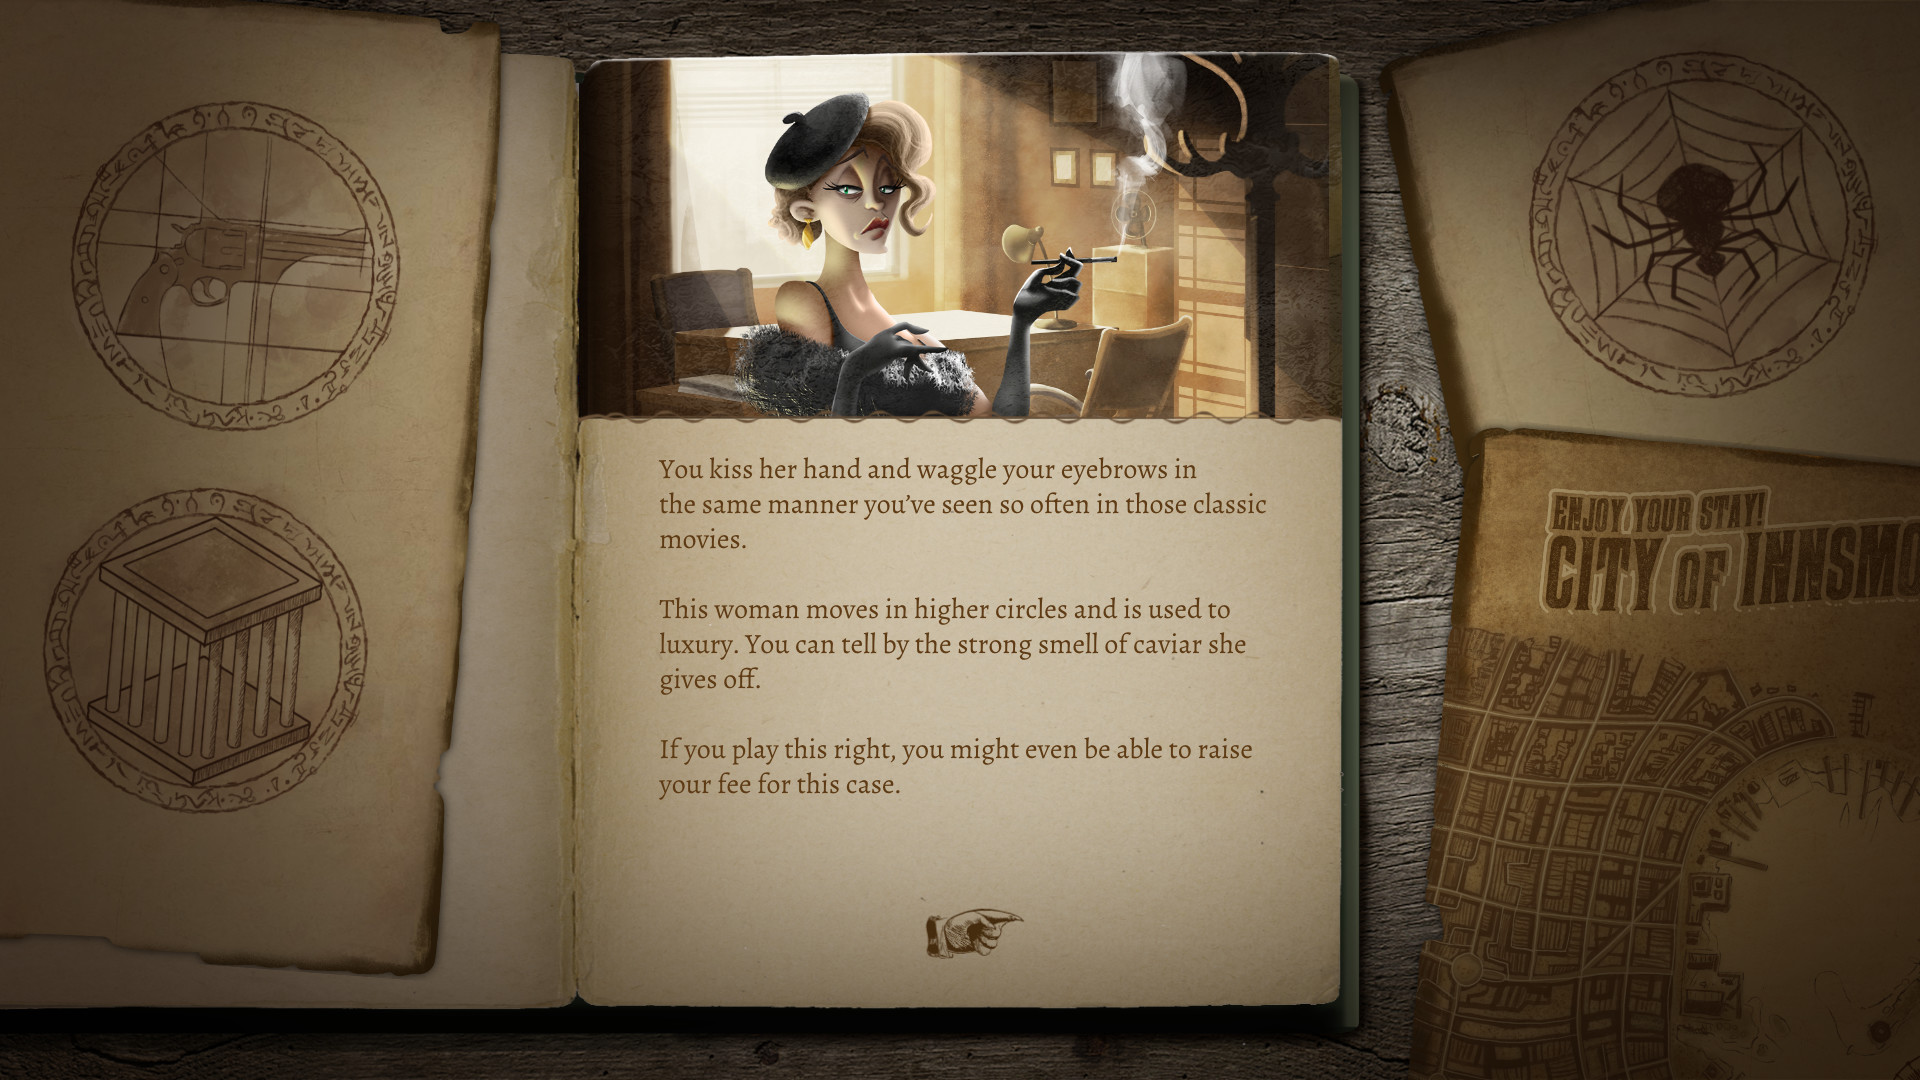 The Innsmouth Case is heading for iOS and Android